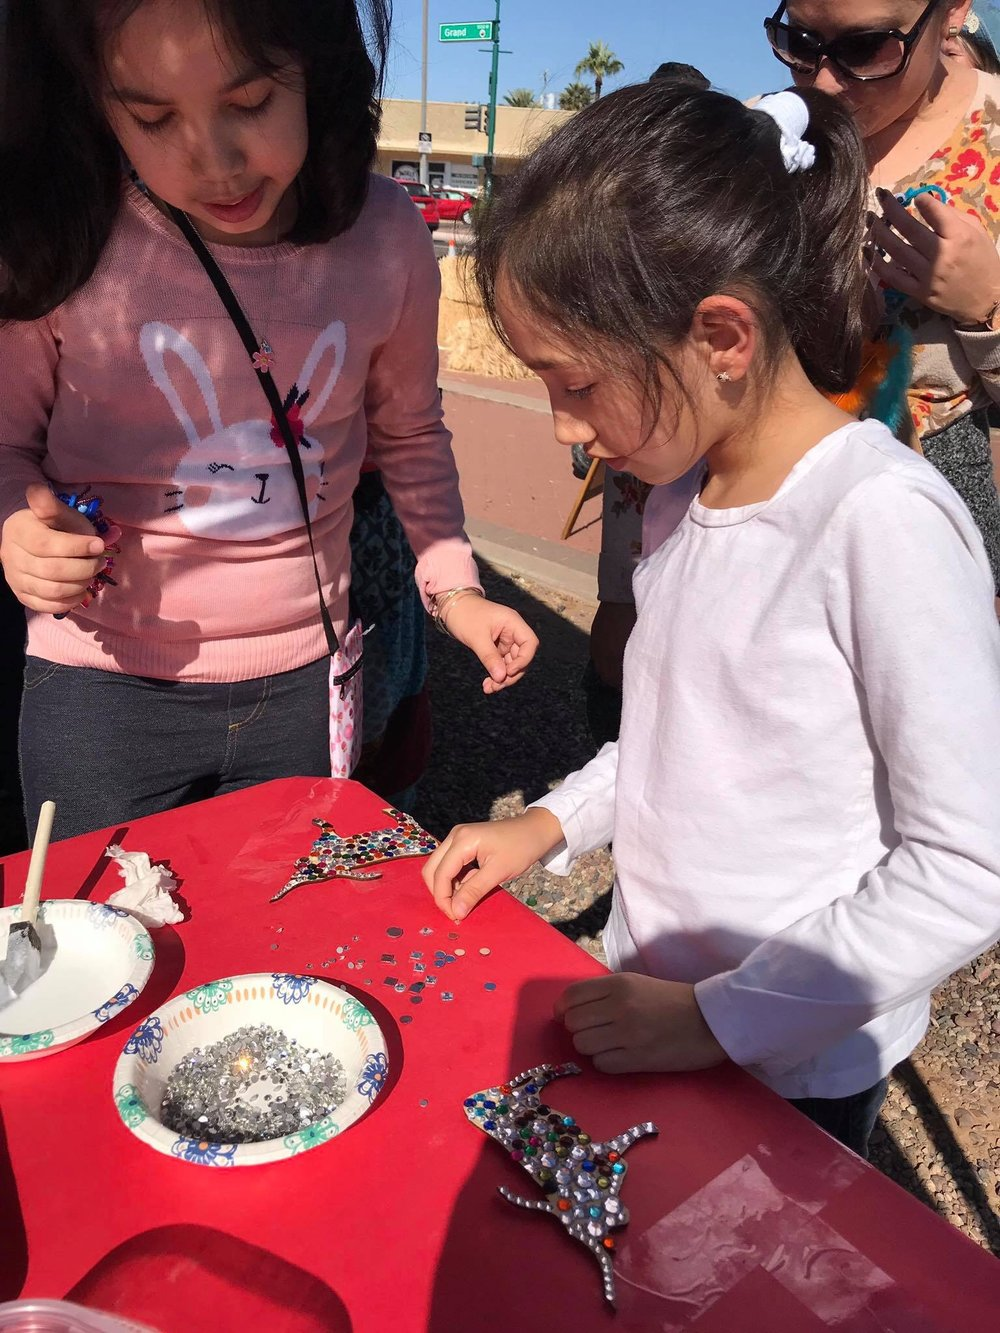 """- On November 10th, The Walter Hive joined the Grand Ave Festival for a fun day of connecting with like-minded artists and the local community. Kids and adults alike stopped by our booth to create a smaller, take home version of our """"Billy The Bull"""" statue and work on a large colorful loom. I was amazed at how long some of the kids and parents stayed to work on their bull -a few close to an hour- and the amount of detail people were adding to each of them. One of the most memorable parts of the festival for me was a conversation I had with Kirk Strawn (Founder of Walter Productions) about how Billy the Bull came to be. He described to me how he had found this old, rusty, and forlorn statue of a bull in Mexico and decided to take it under his wing and restore it. The result was a magnificent, shining bull that nobody would have ever guessed was on its last leg a few months ago. I think that this story perfectly sums up what we intend to do at The Walter Hive- provide a space for all to discover just how much they really do shine.-Anna Douglas, intern"""